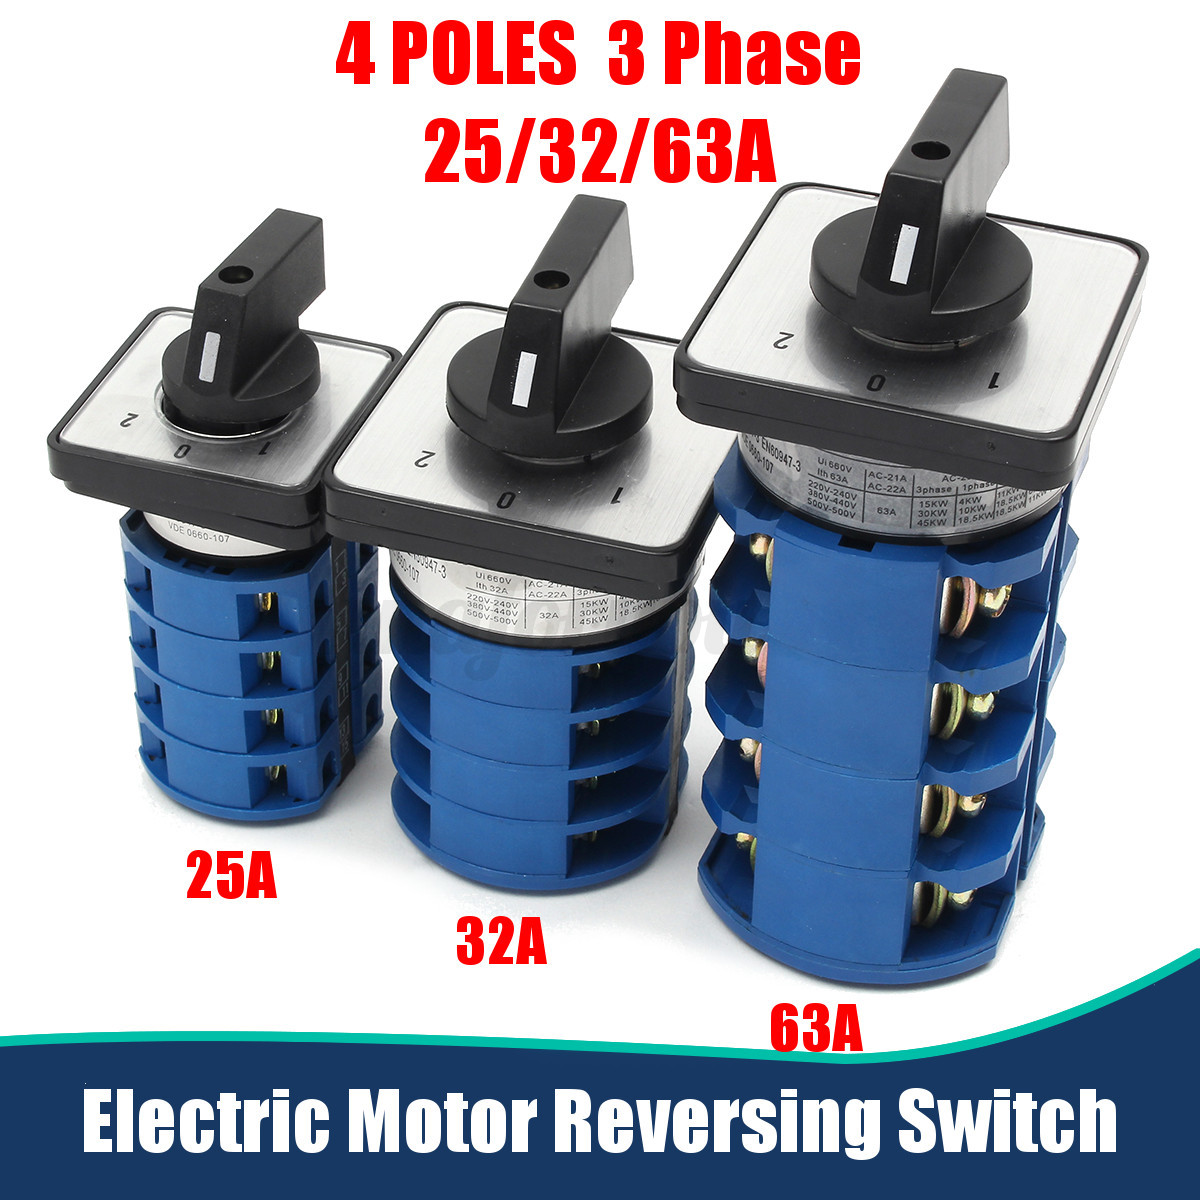 Electric Motors Metal Lathe Wiring Diagram Dpdt Toggle Directions To Motor Reverse Best Secret Reversing Switch 3 Phase 25 32 63amp Or 4 History Polarity